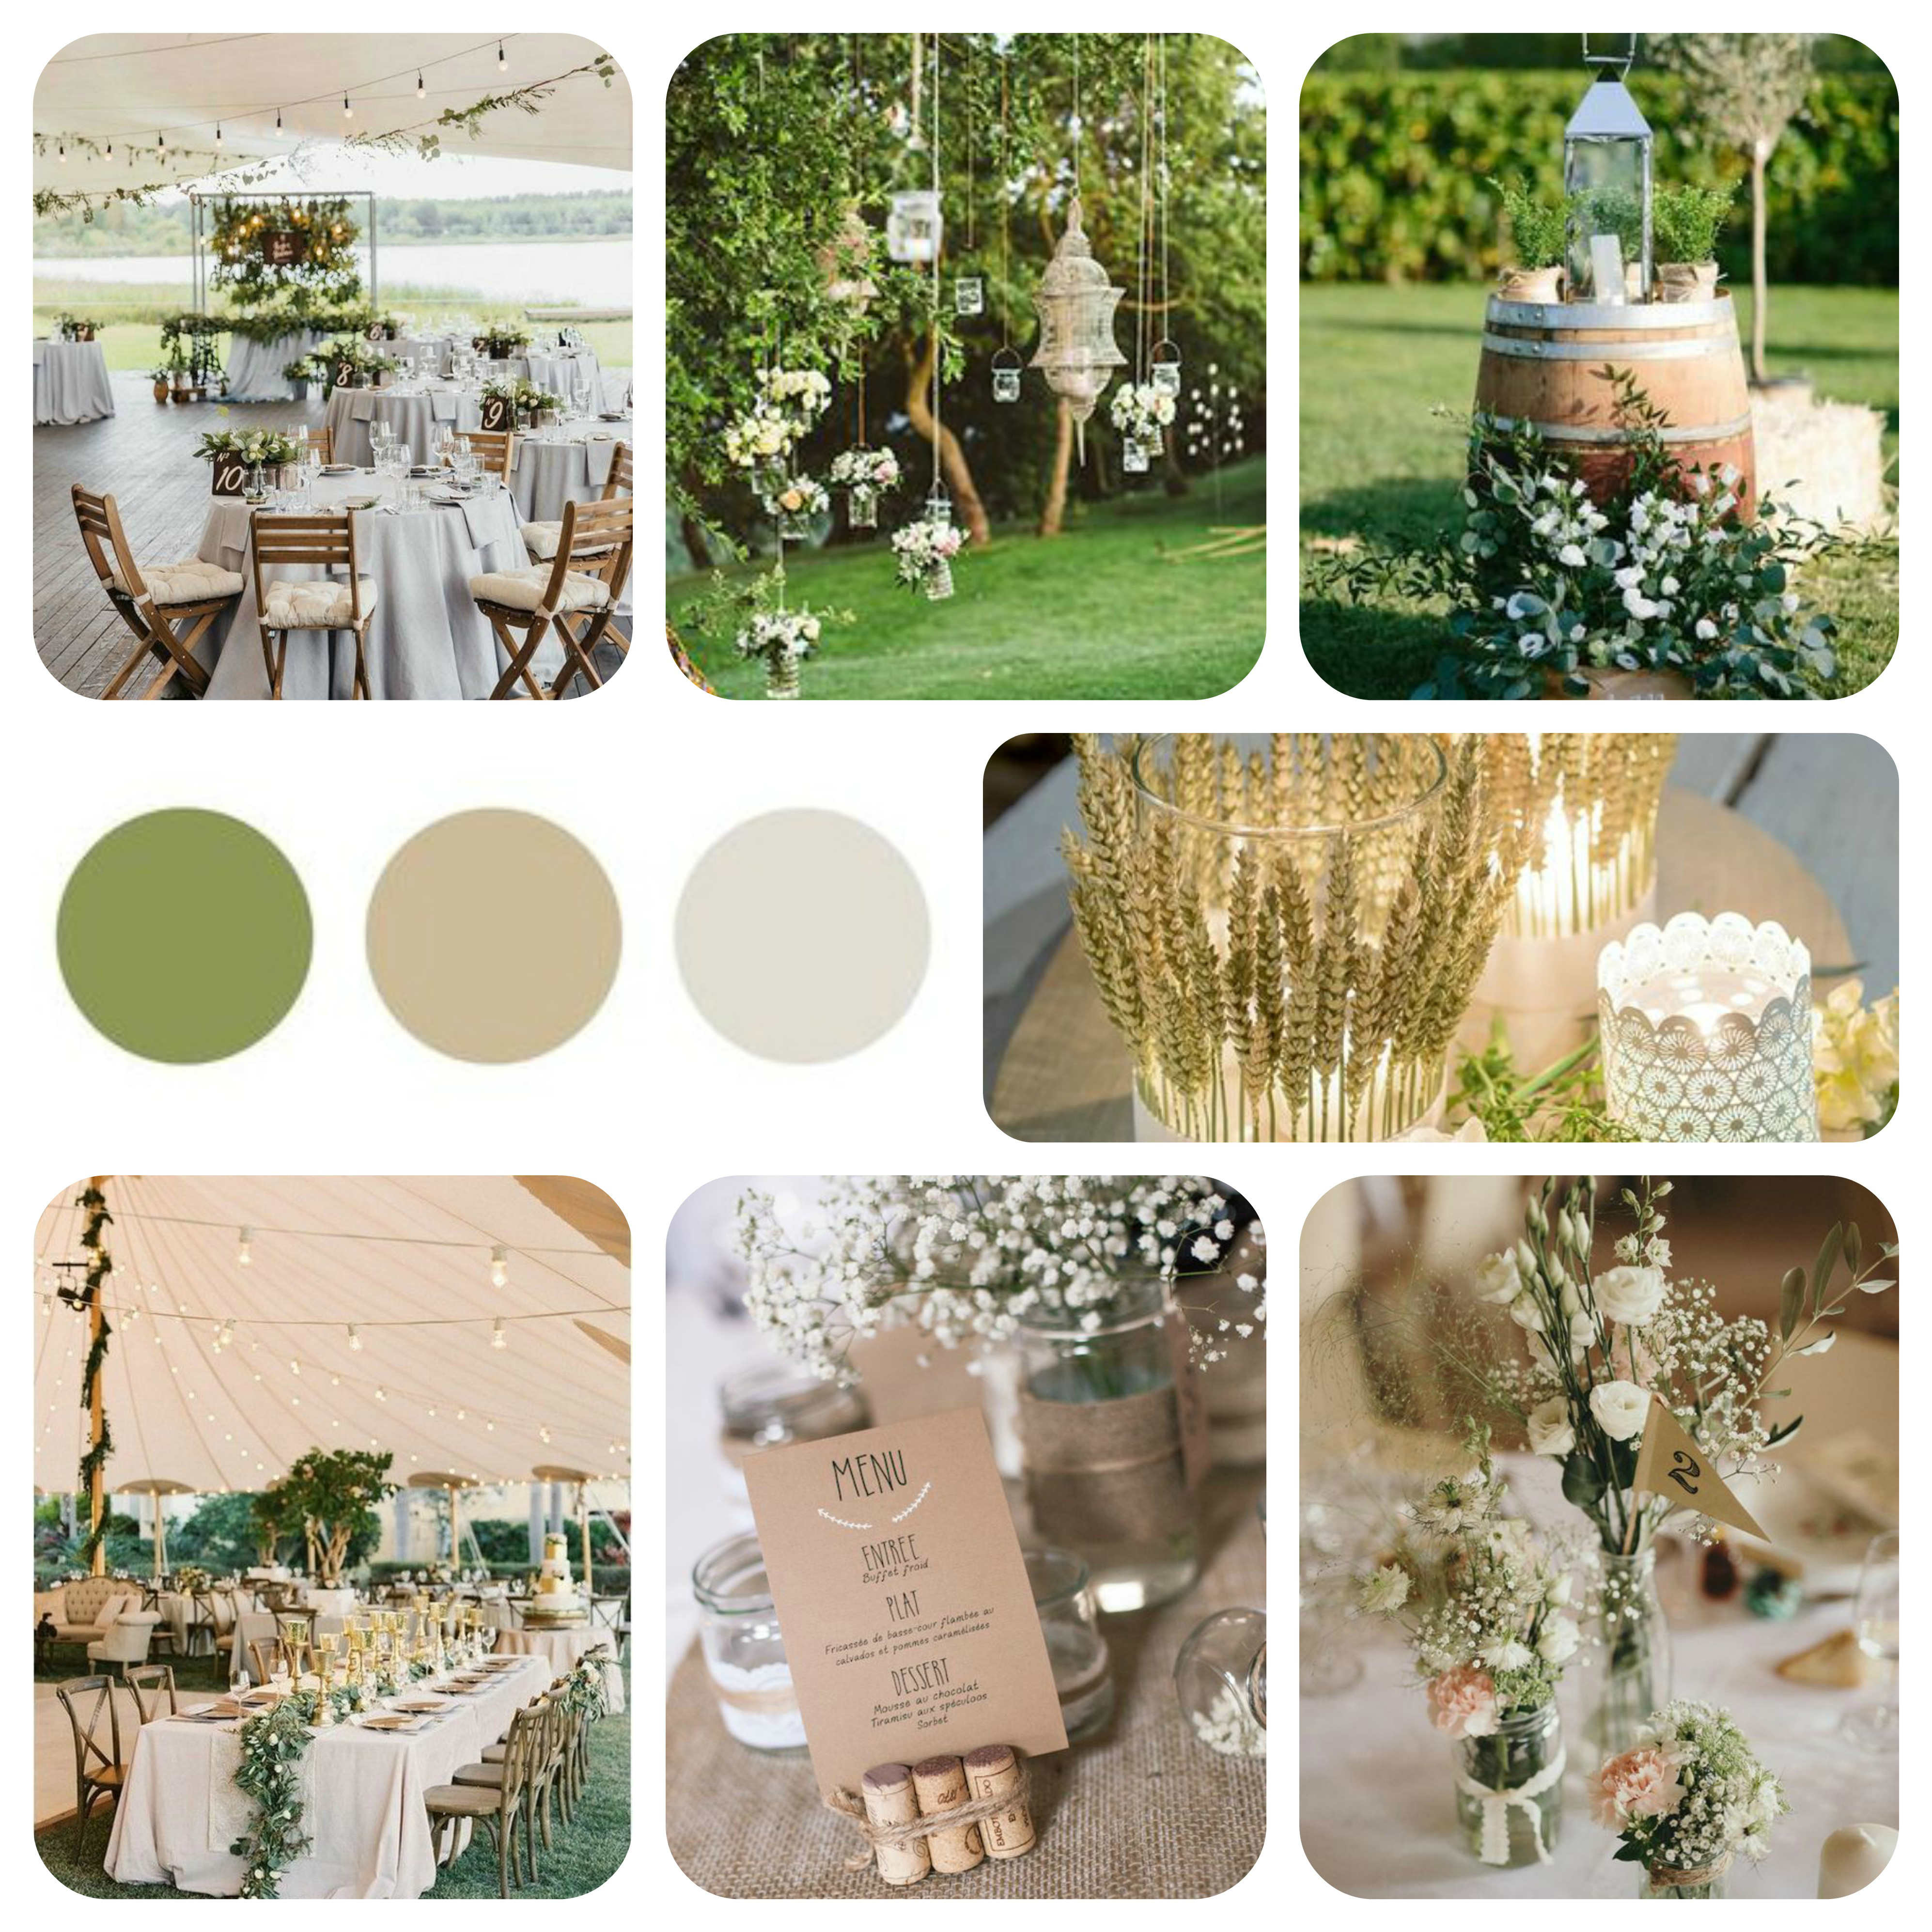 Champetre-mariage-champetre-theme-champetre-idees-couleurs-ambiance-alexa-reception